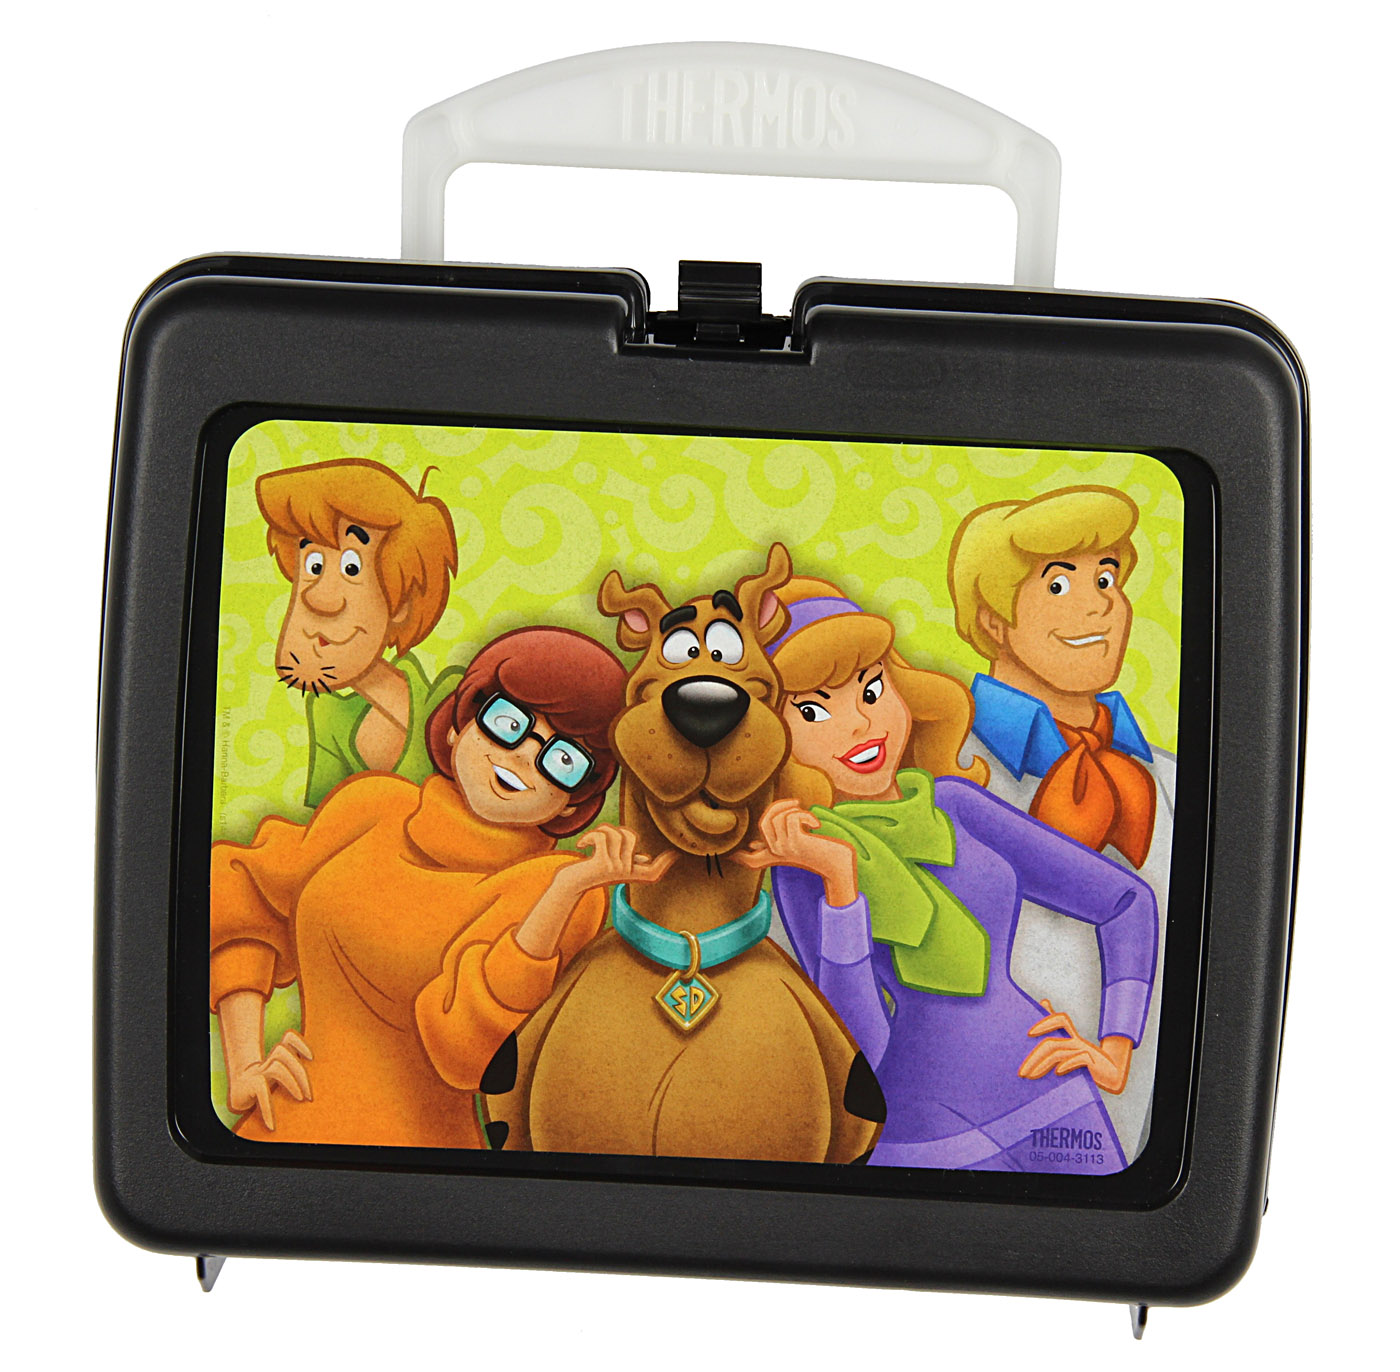 Thermos Scooby-Doo Characters Hard Lunch Tote Kit